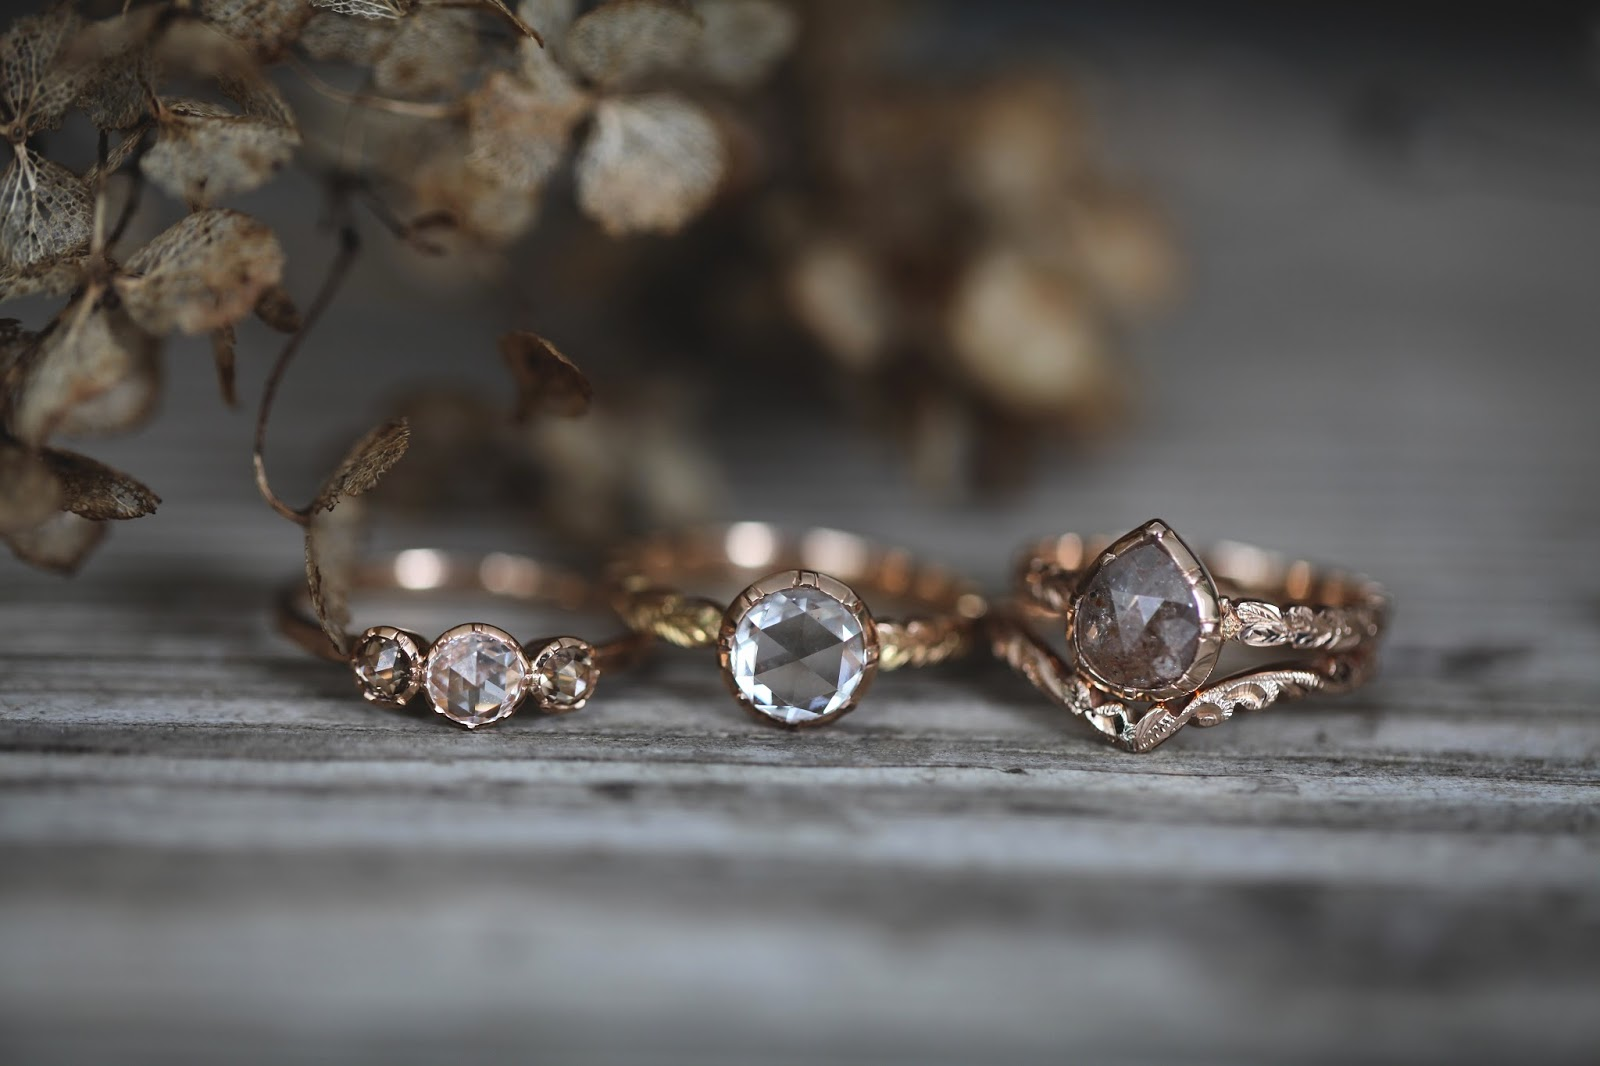 pearl rings with rust shade lampholder